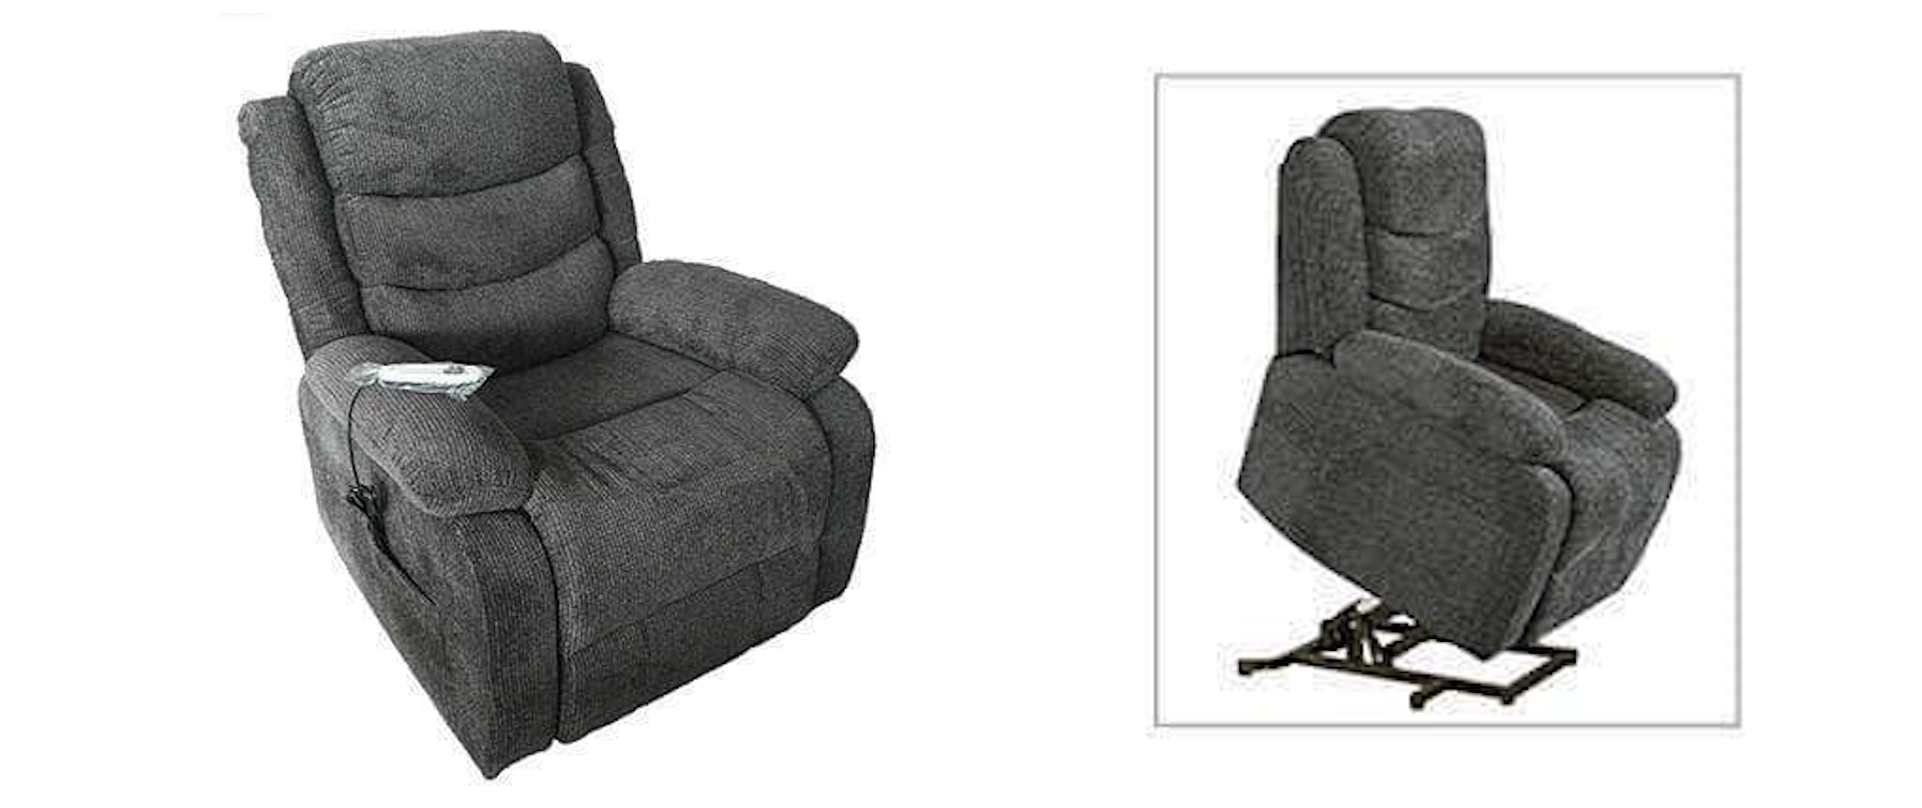 Dark grey Primo international single lift chair in Canada